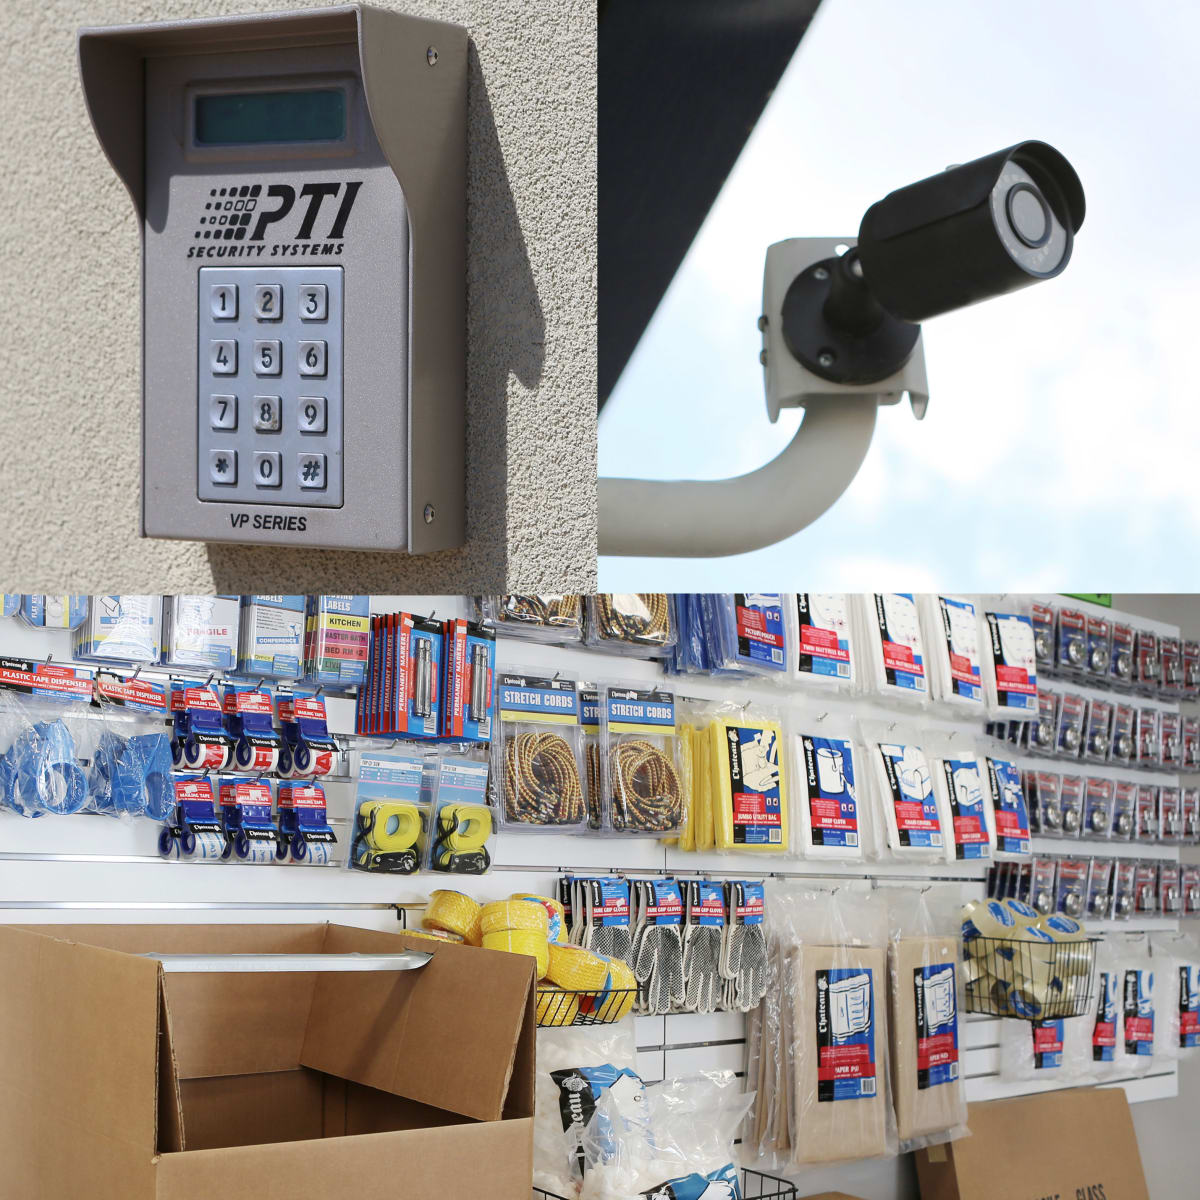 We provide 24 hour security monitoring and sell various moving and packing supplies at StoreSmart Self-Storage in Raleigh, North Carolina